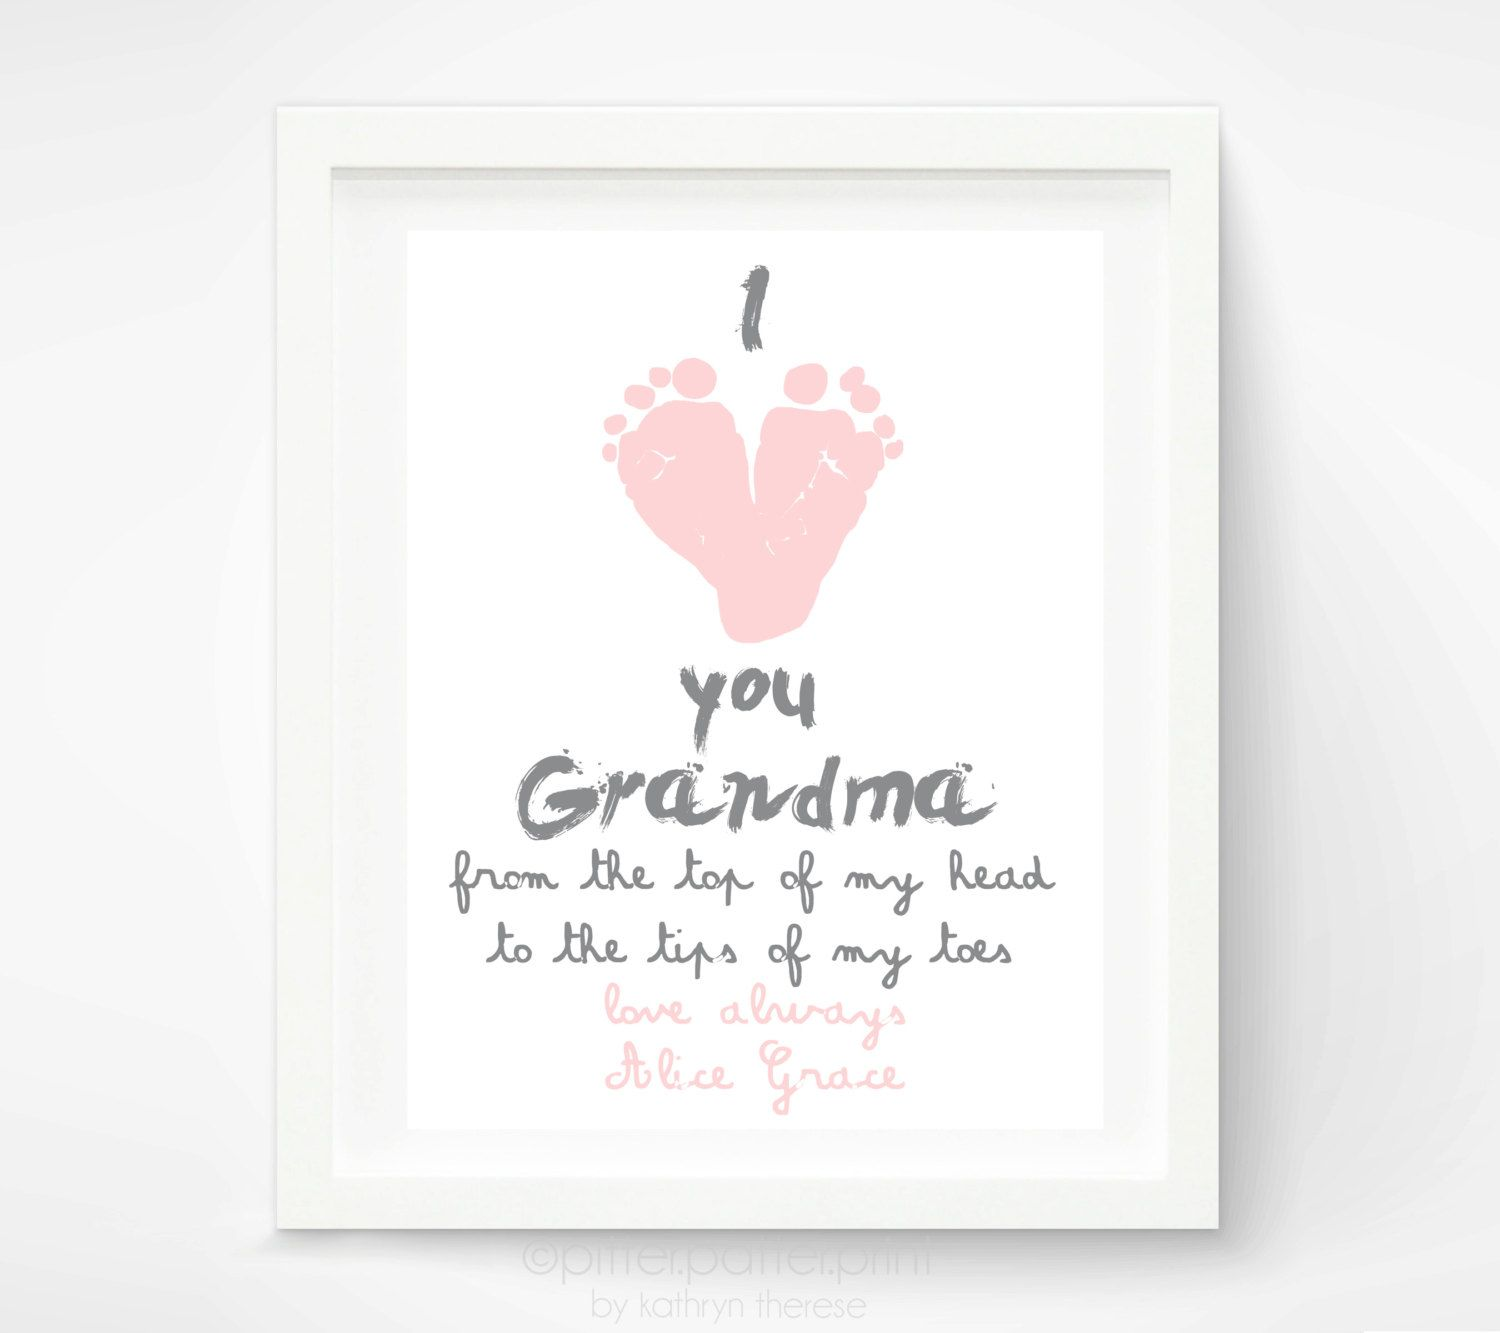 Personalised memorial loved one photo quote plaque mum grandma mothersday gift